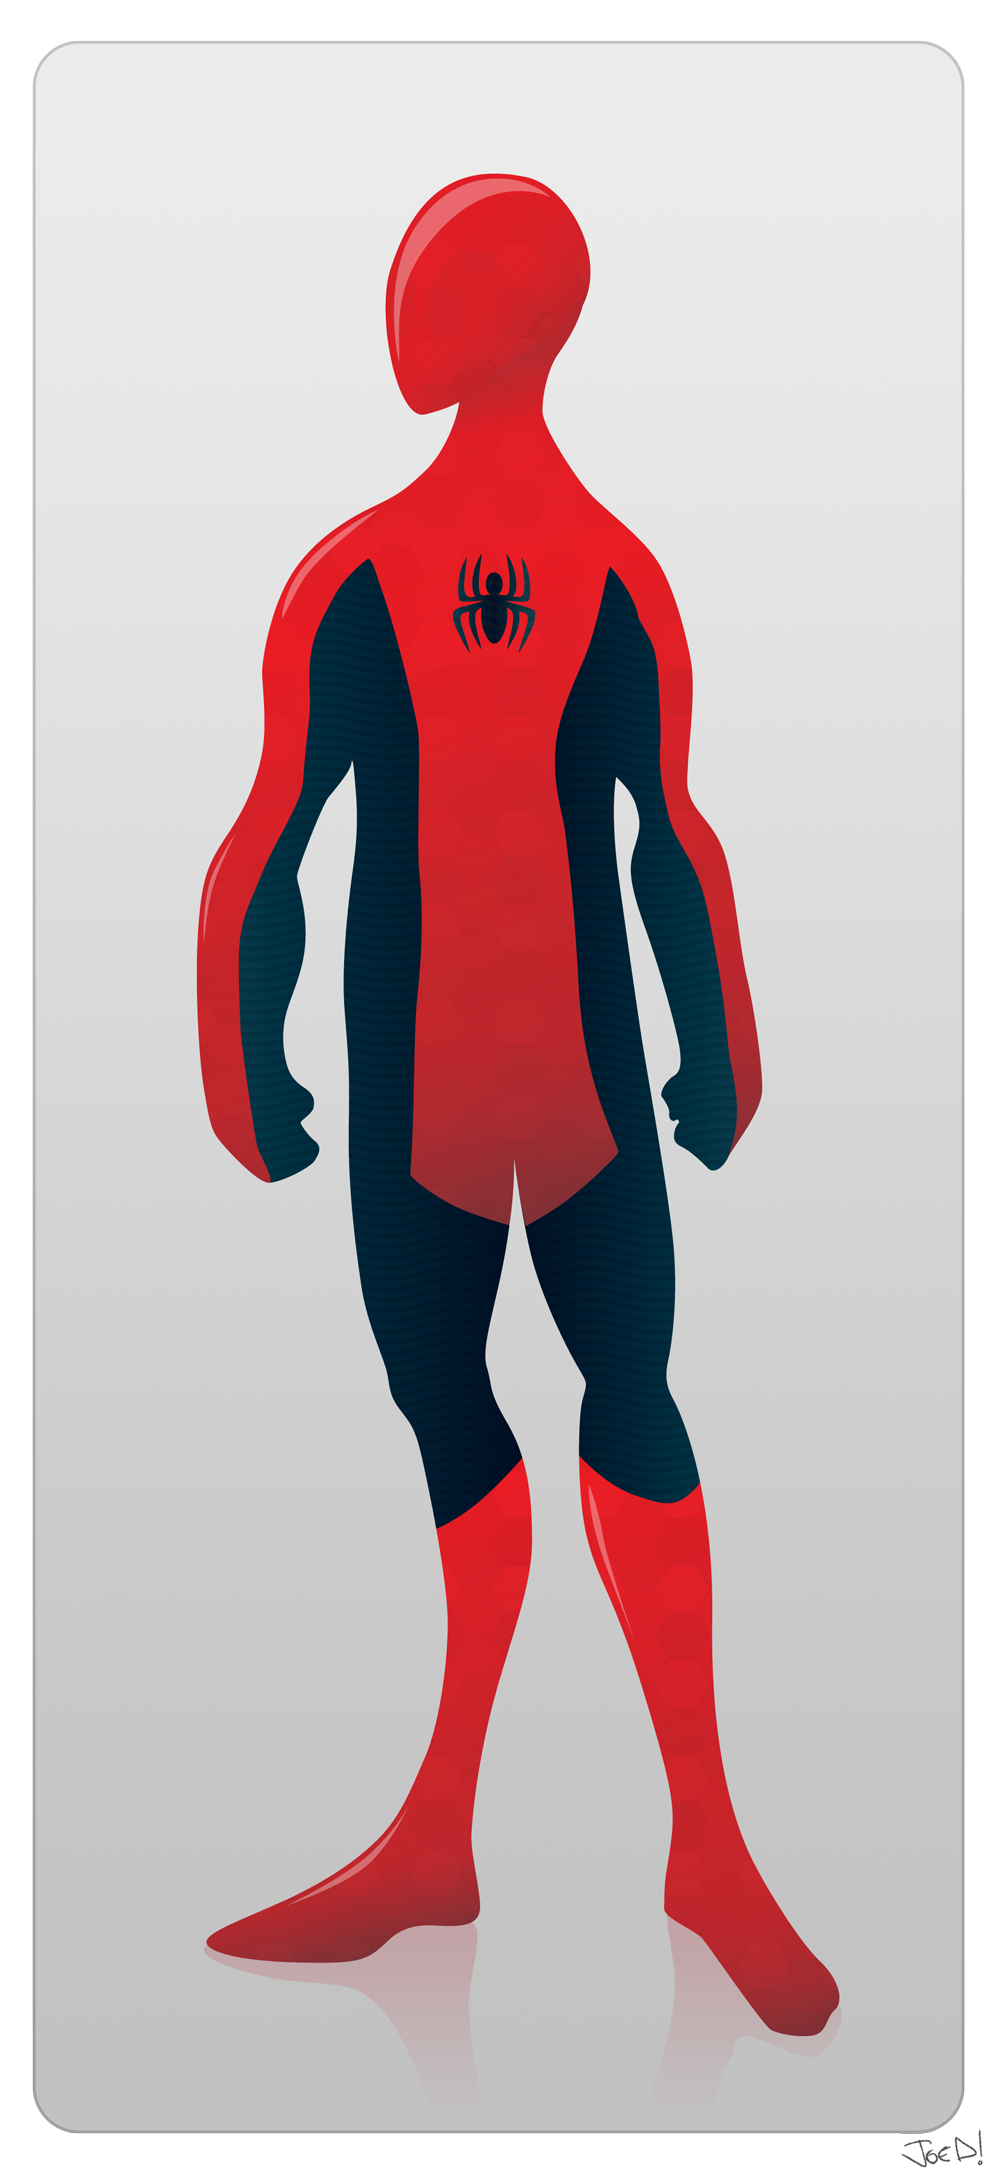 Dieter Rams' Spider-Man by Joe D!